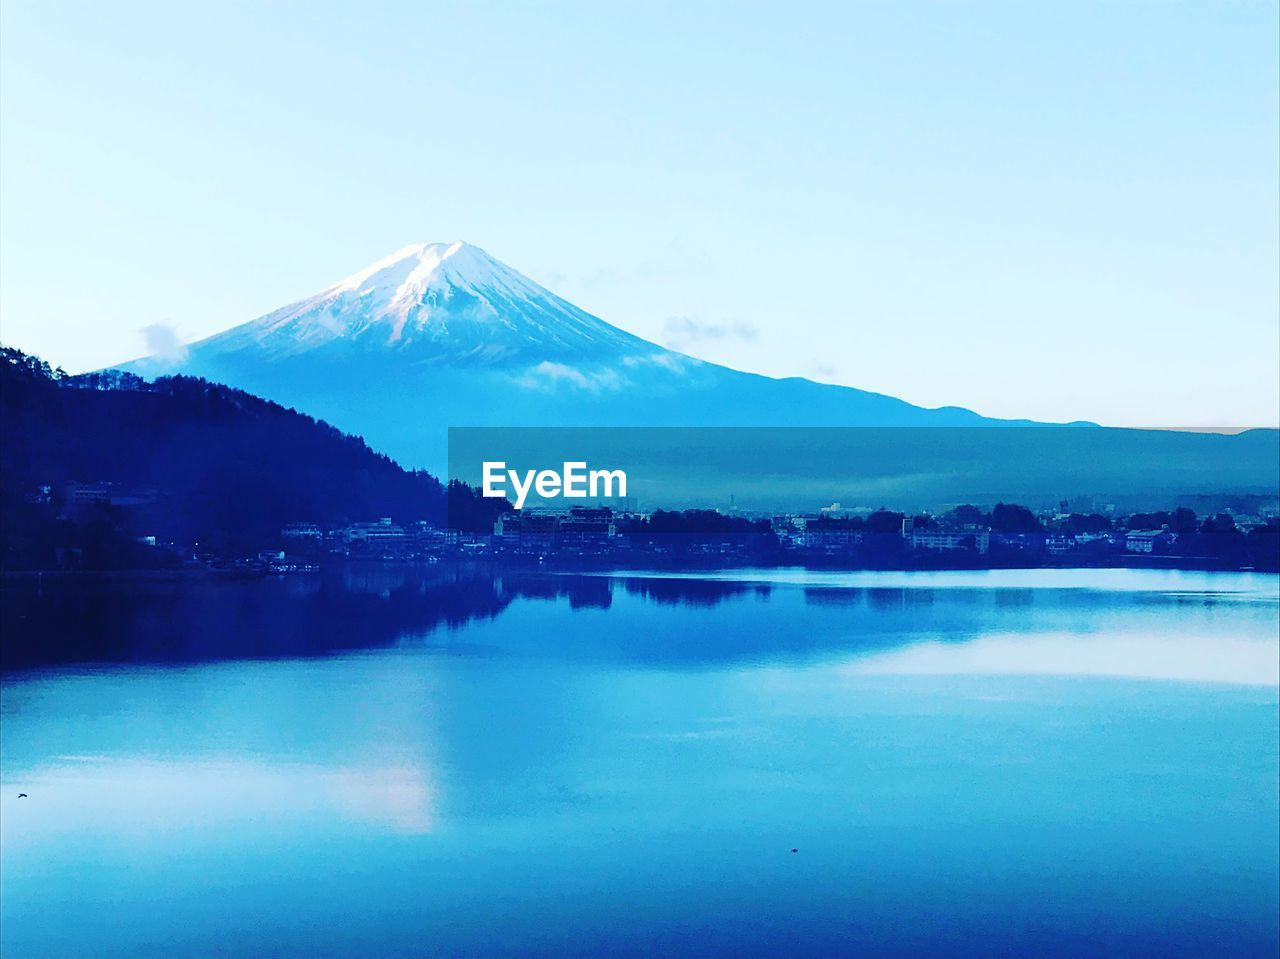 mountain, sky, scenics - nature, beauty in nature, water, tranquil scene, tranquility, lake, waterfront, reflection, blue, non-urban scene, volcano, nature, clear sky, no people, idyllic, winter, snowcapped mountain, mountain peak, outdoors